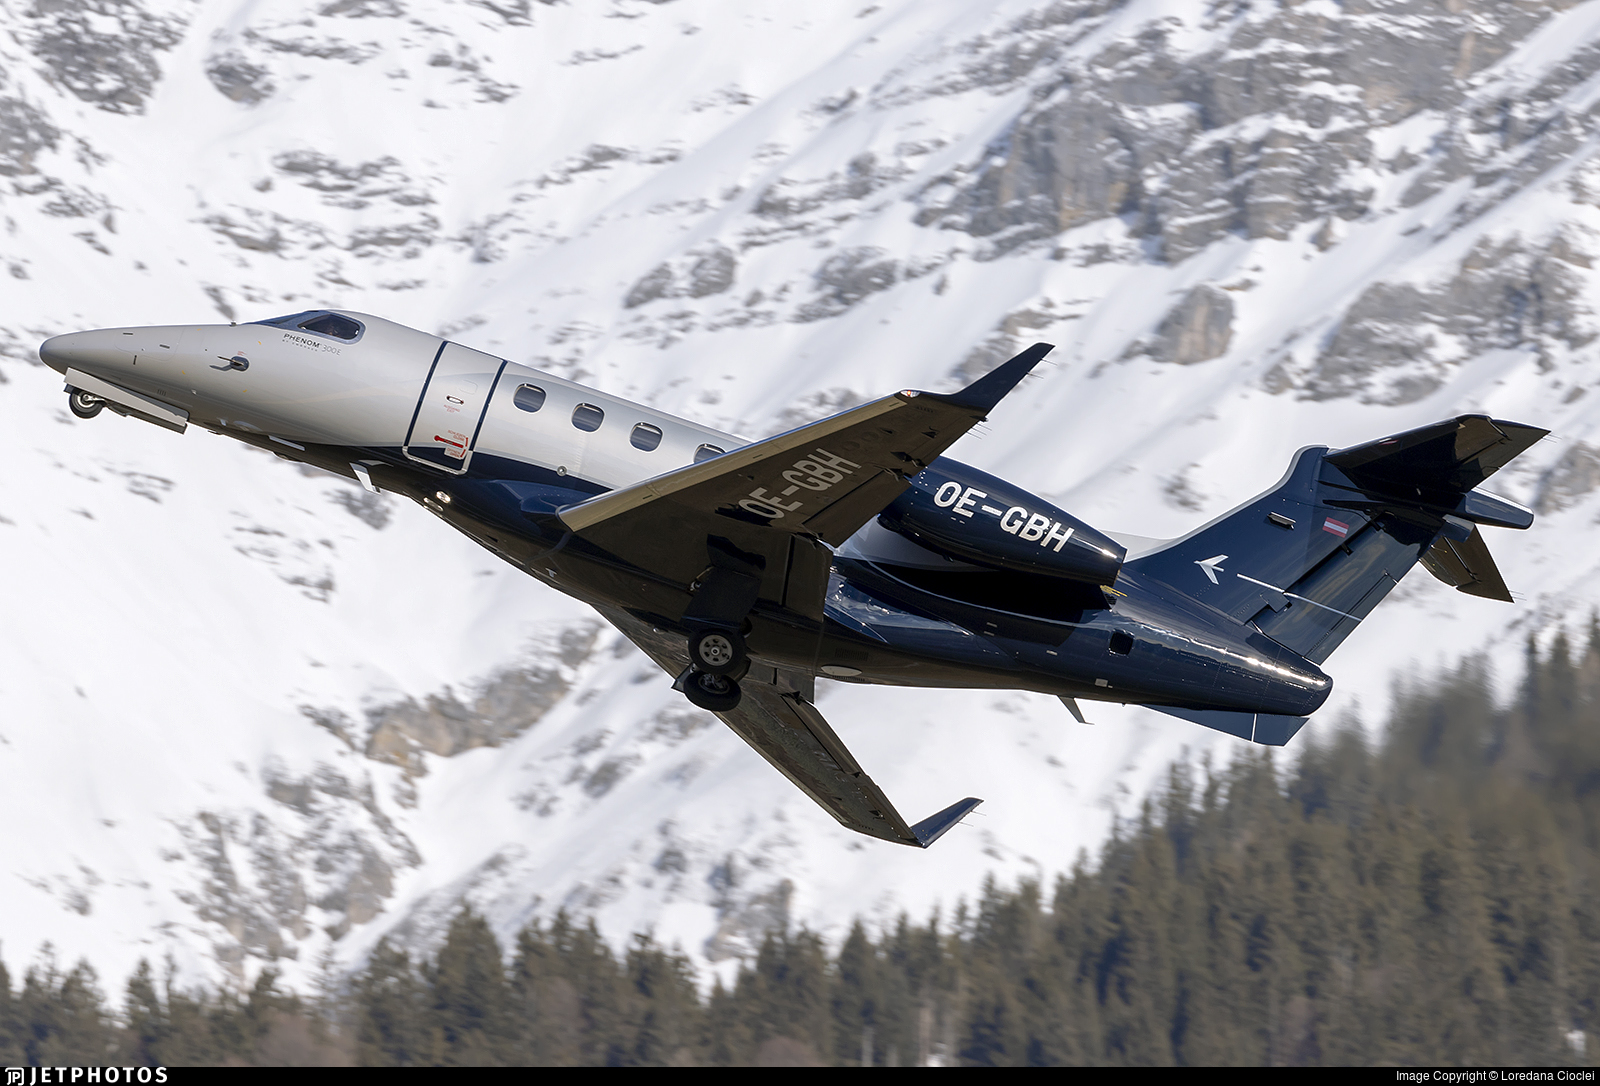 OE-GBH - Embraer 505 Phenom 300E - Tyrolean Jet Services